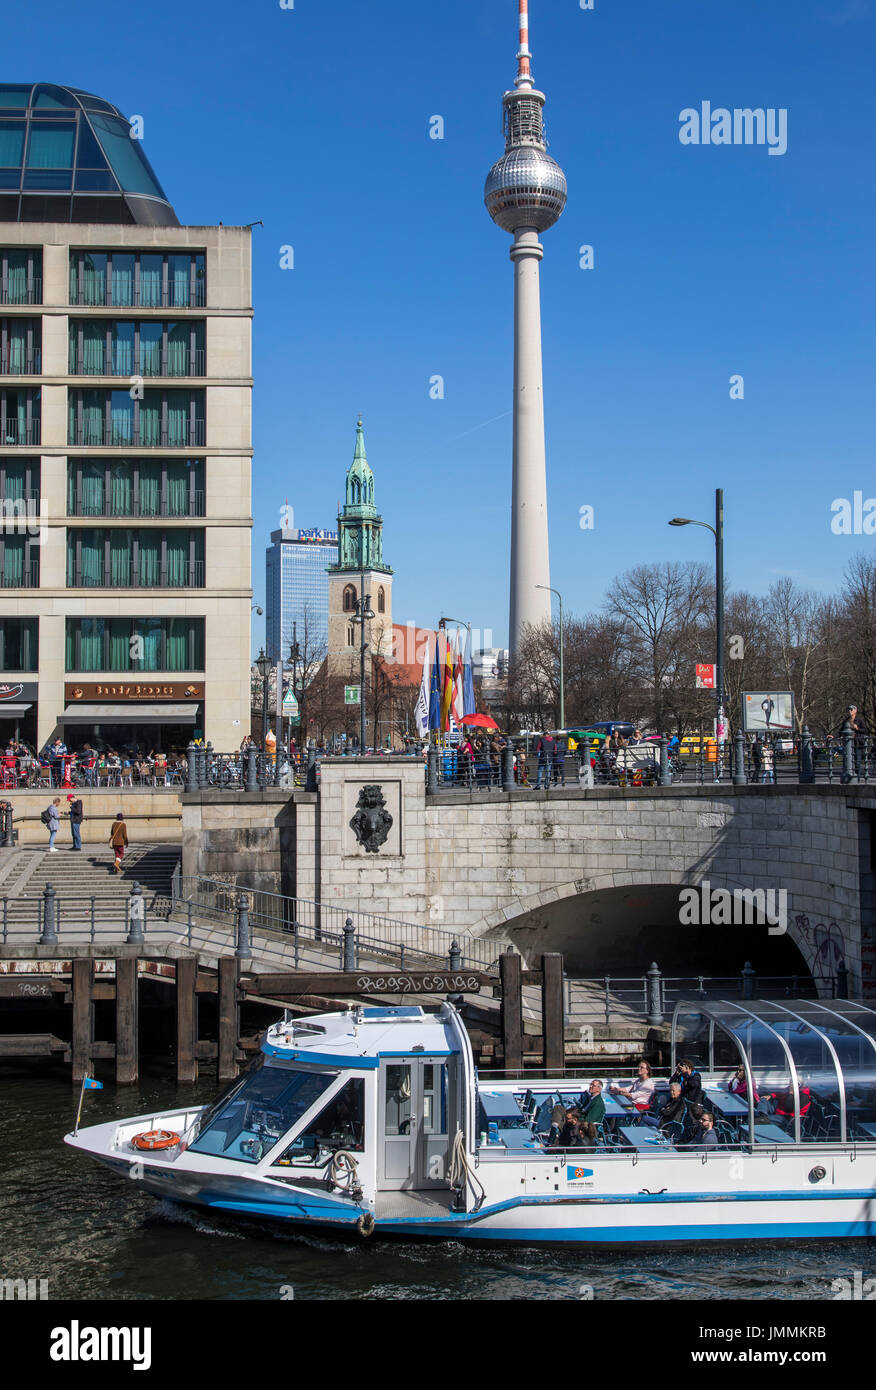 Berlin, Germany, Alexander Square, downtown, Mitte district, Berlin TV tower, Radisson Blu Hotel, river Spree, sightseeing boat, - Stock Image